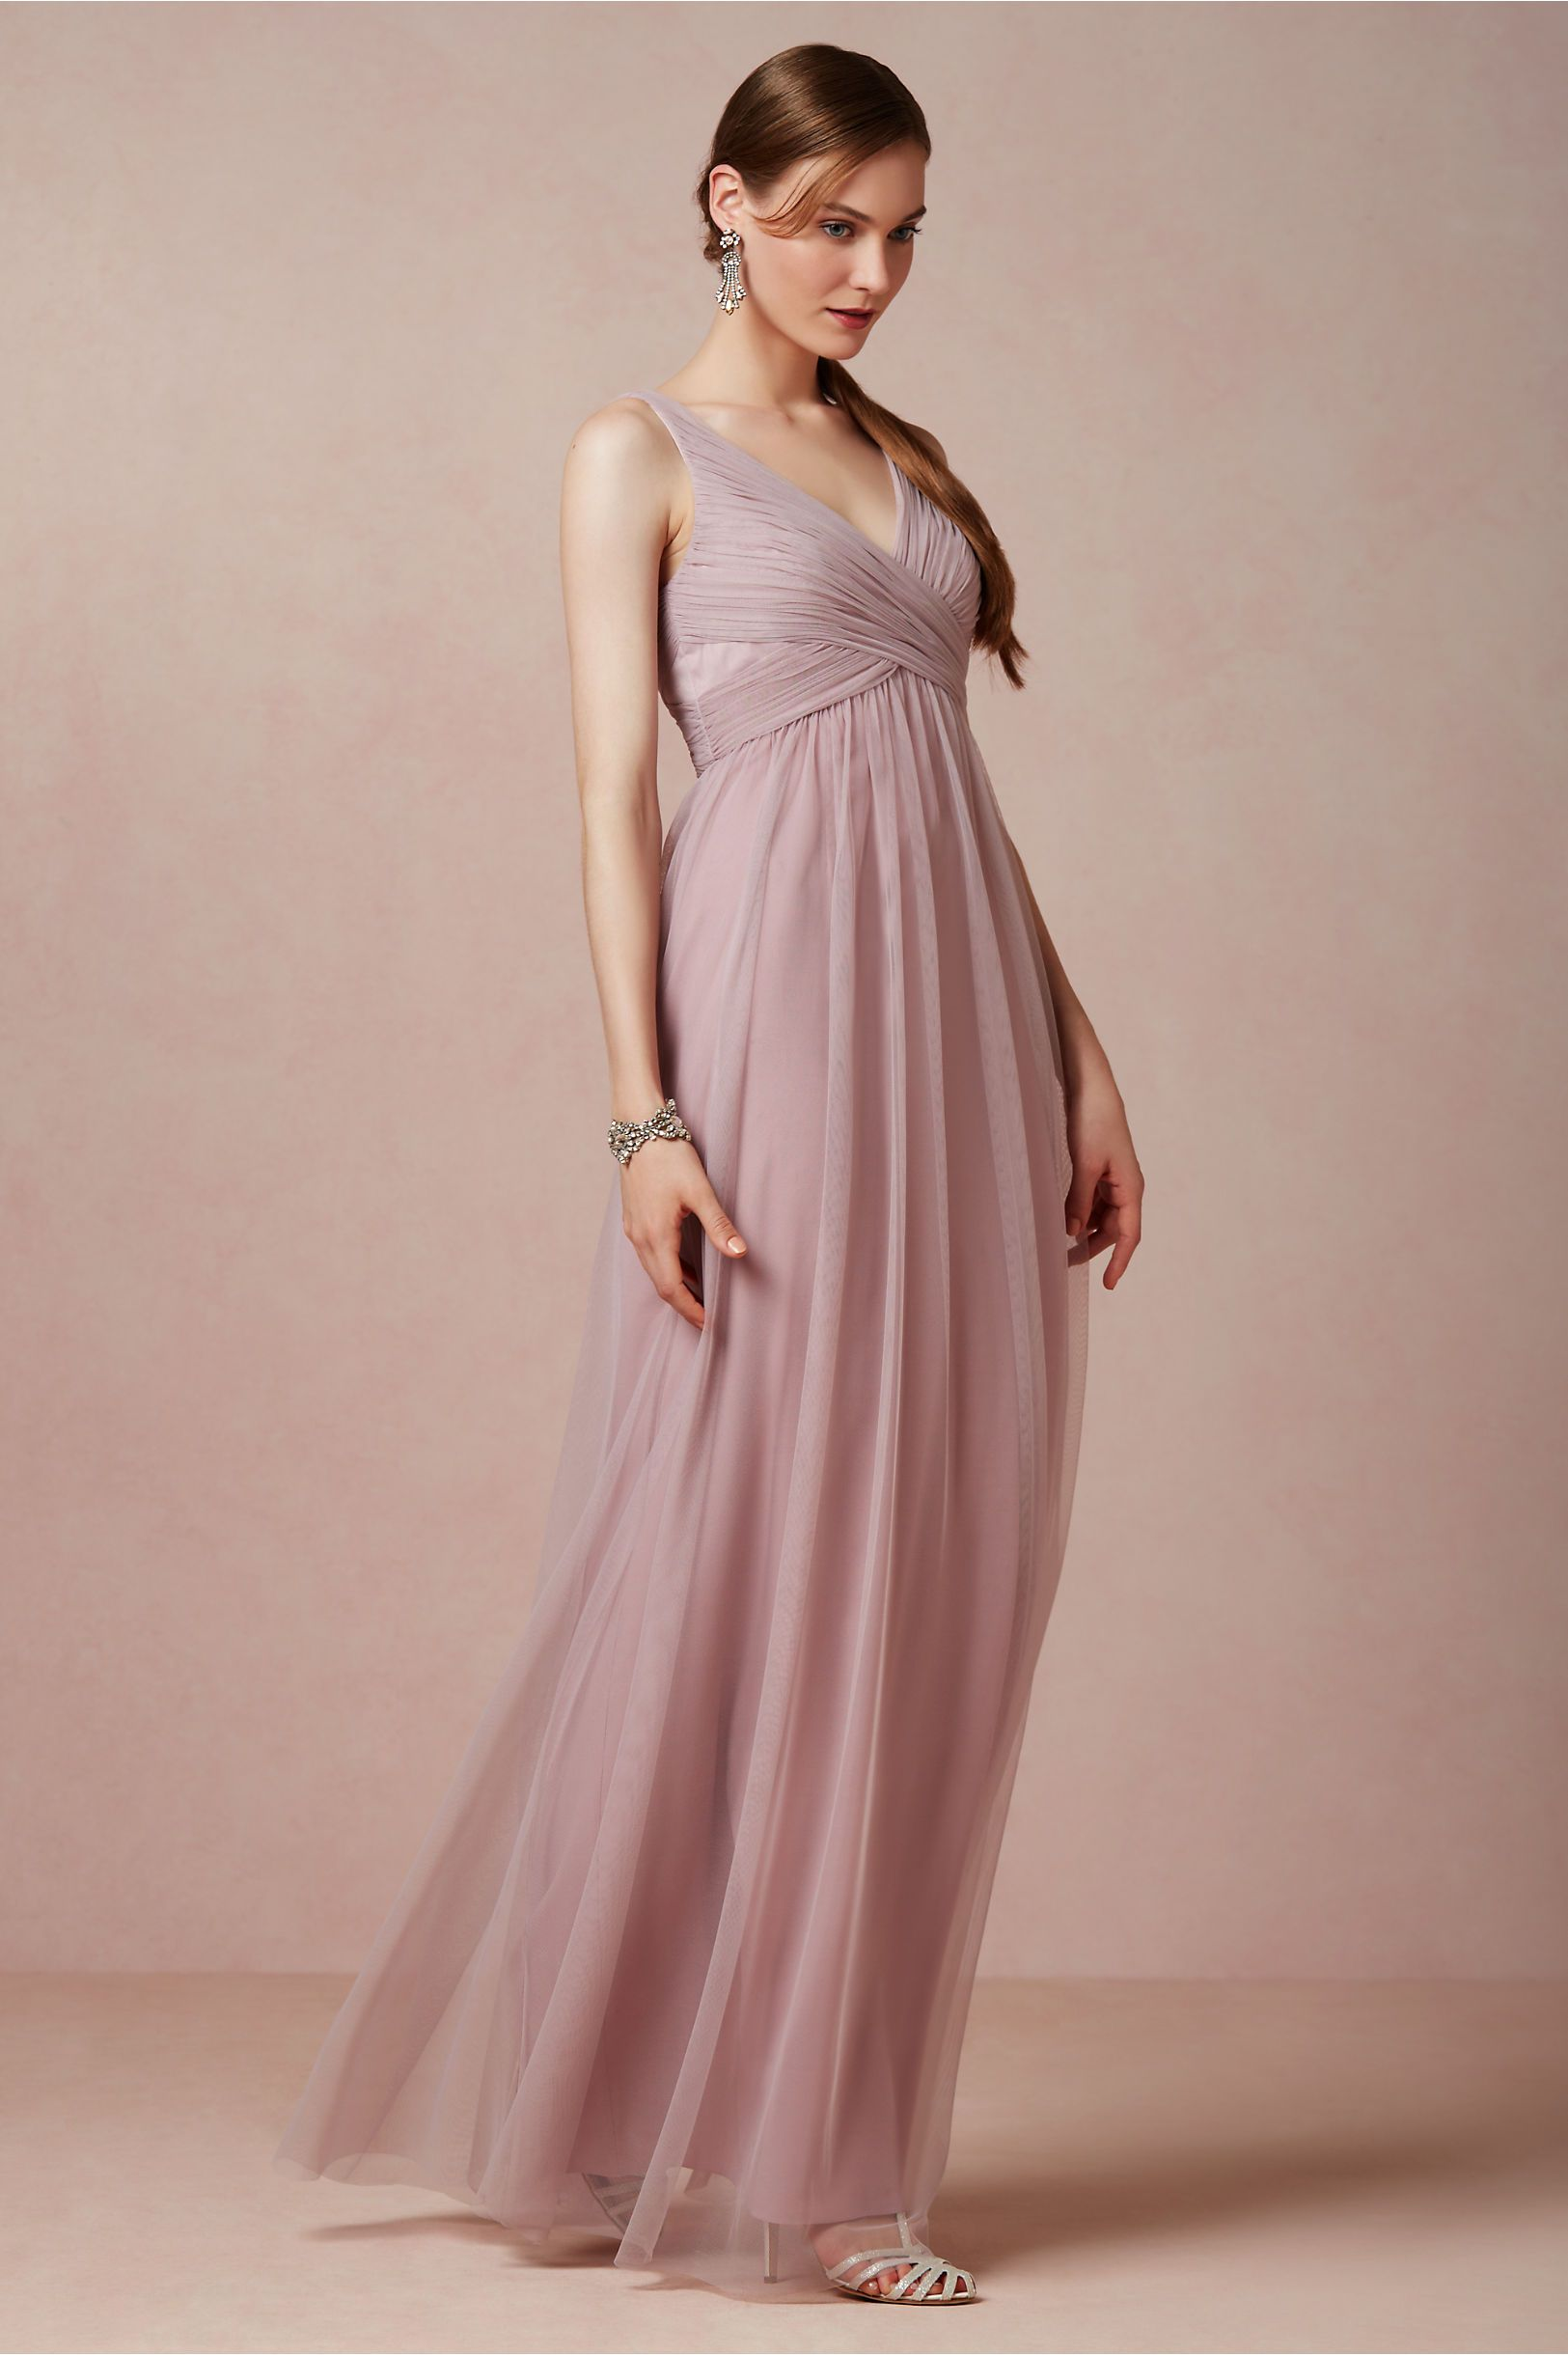 Esme Maxi Dress in Bridal Party & Guests Bridesmaids at BHLDN | Zo\'s ...